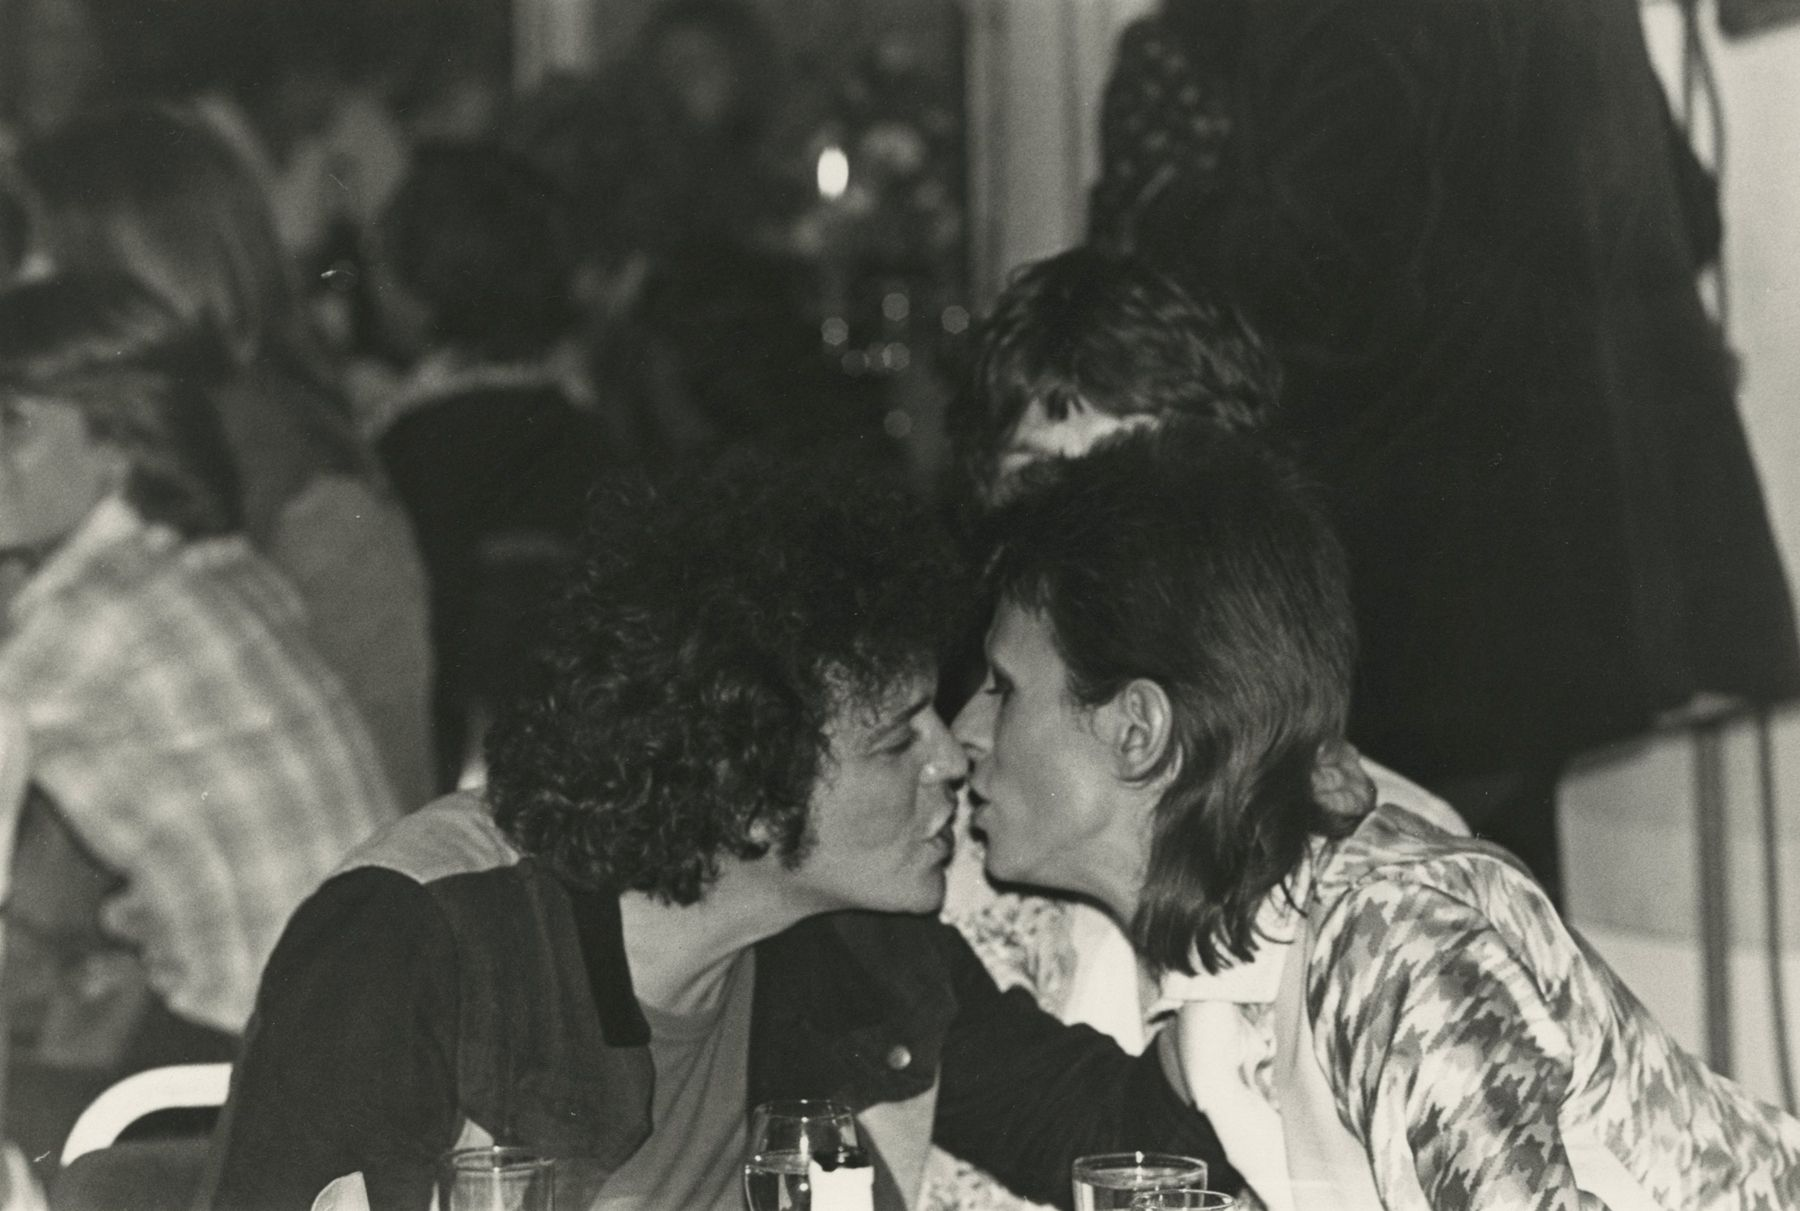 Mick Rock - Lou Reed and David Bowie, seated by Mick Jagger, kiss at the Cafe Royal, after Ziggy Stardust's last live performance at Hammersmith Odeon in London, 1973 - Howard Greenberg Gallery - 2018